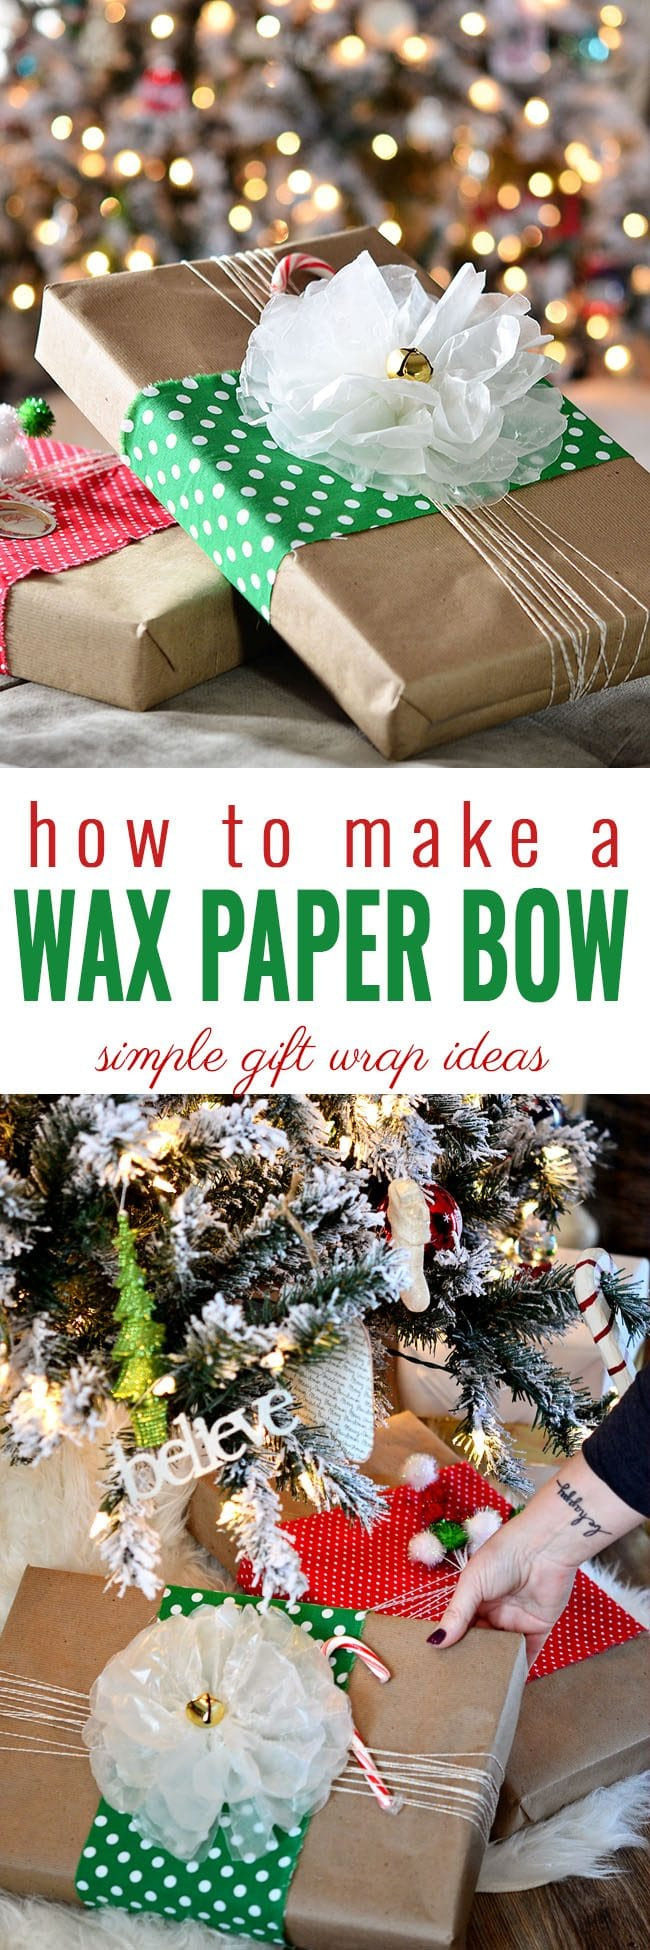 Easy HolidayWax Paper Bow